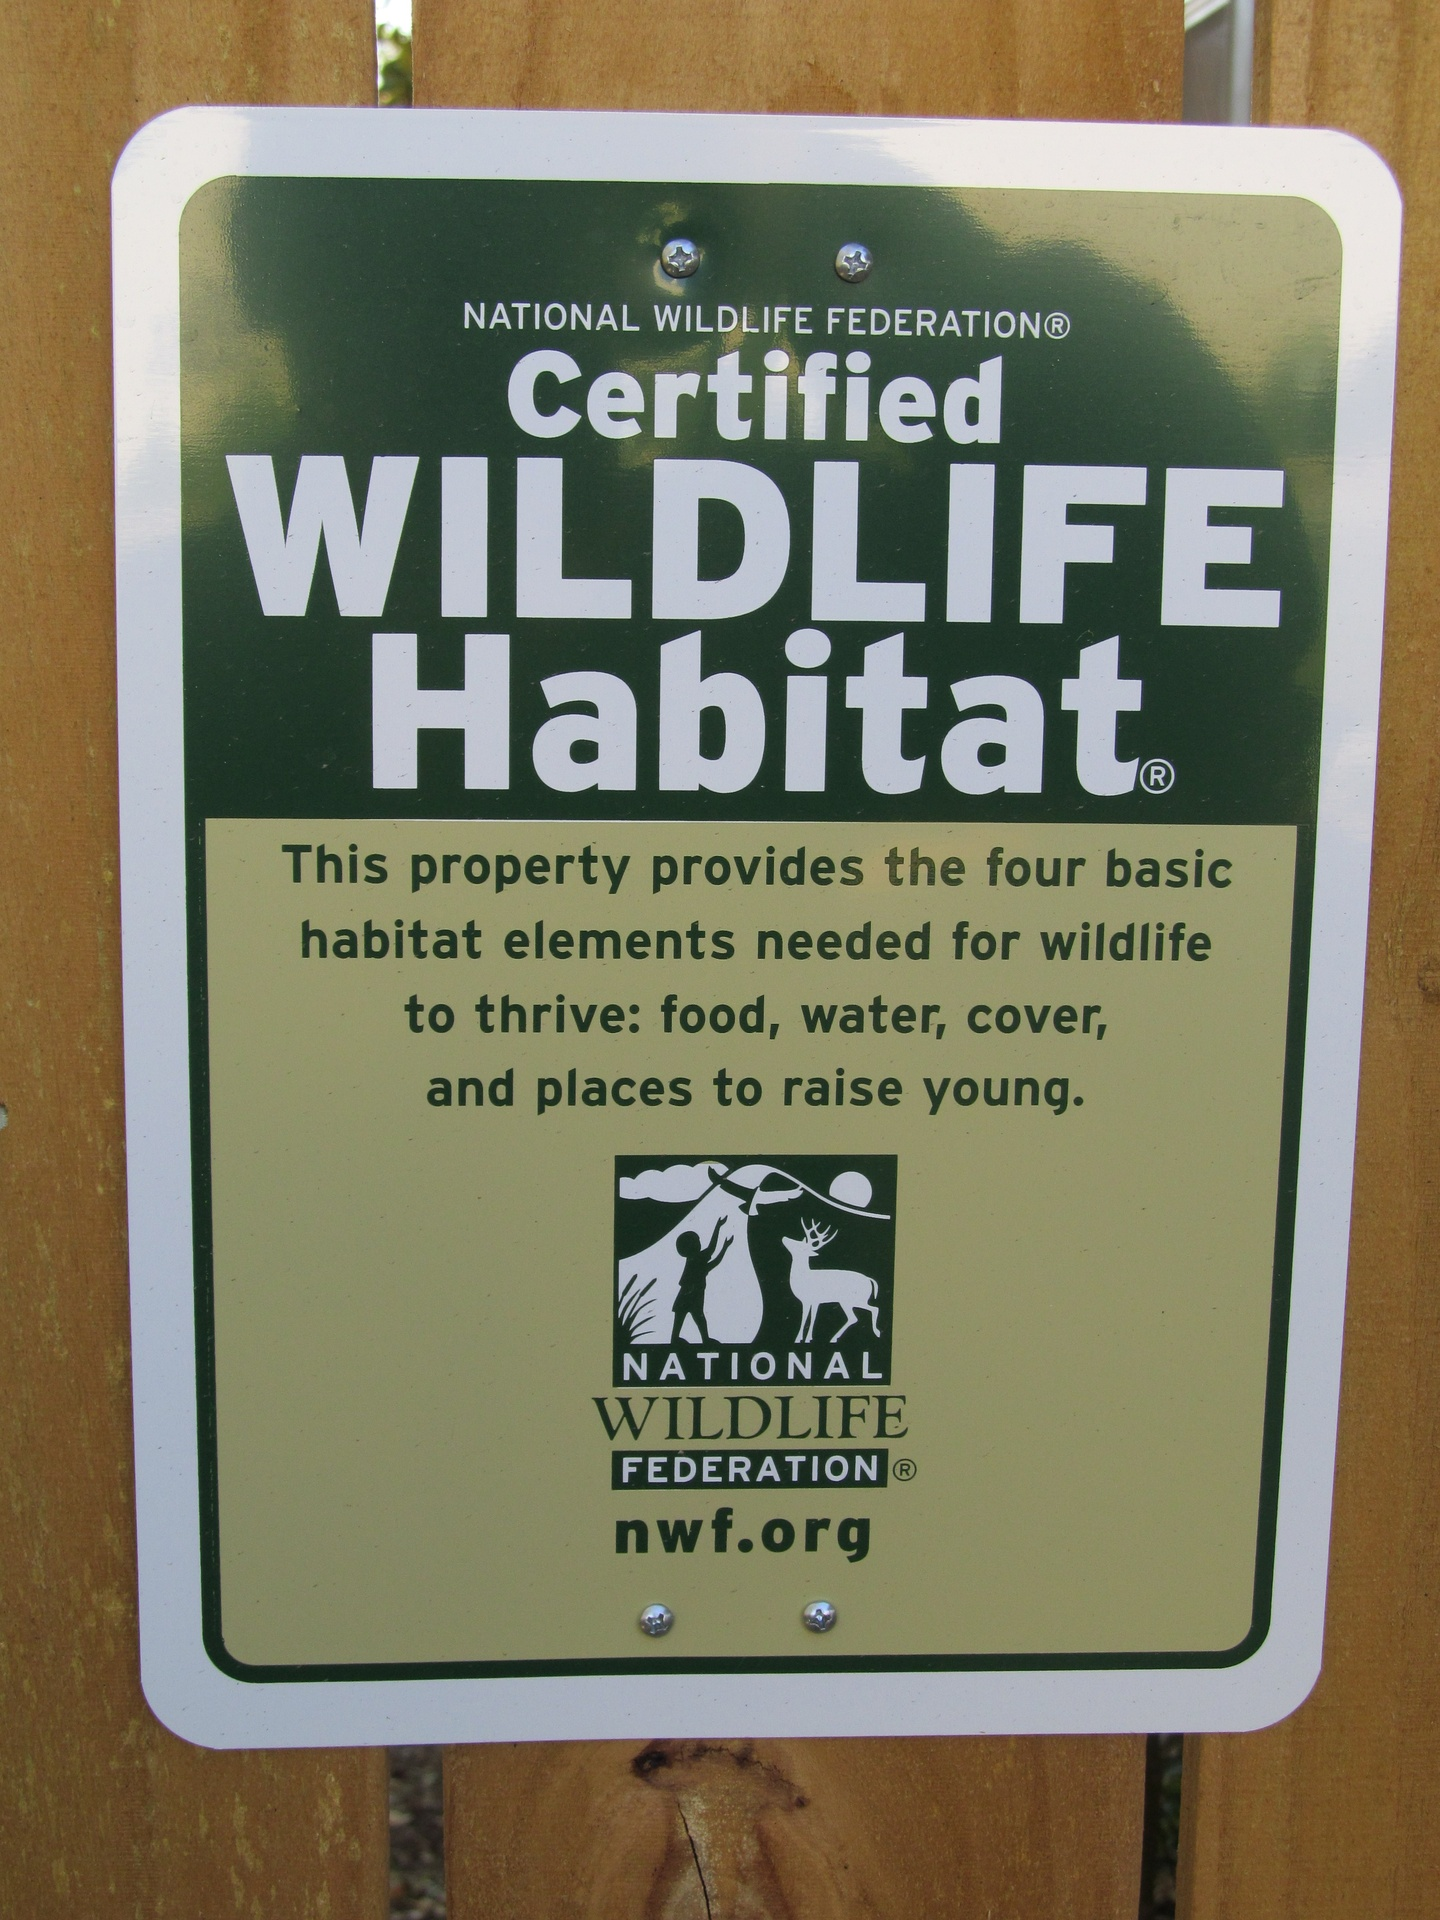 Our NWF Wildlife Habitat Certification